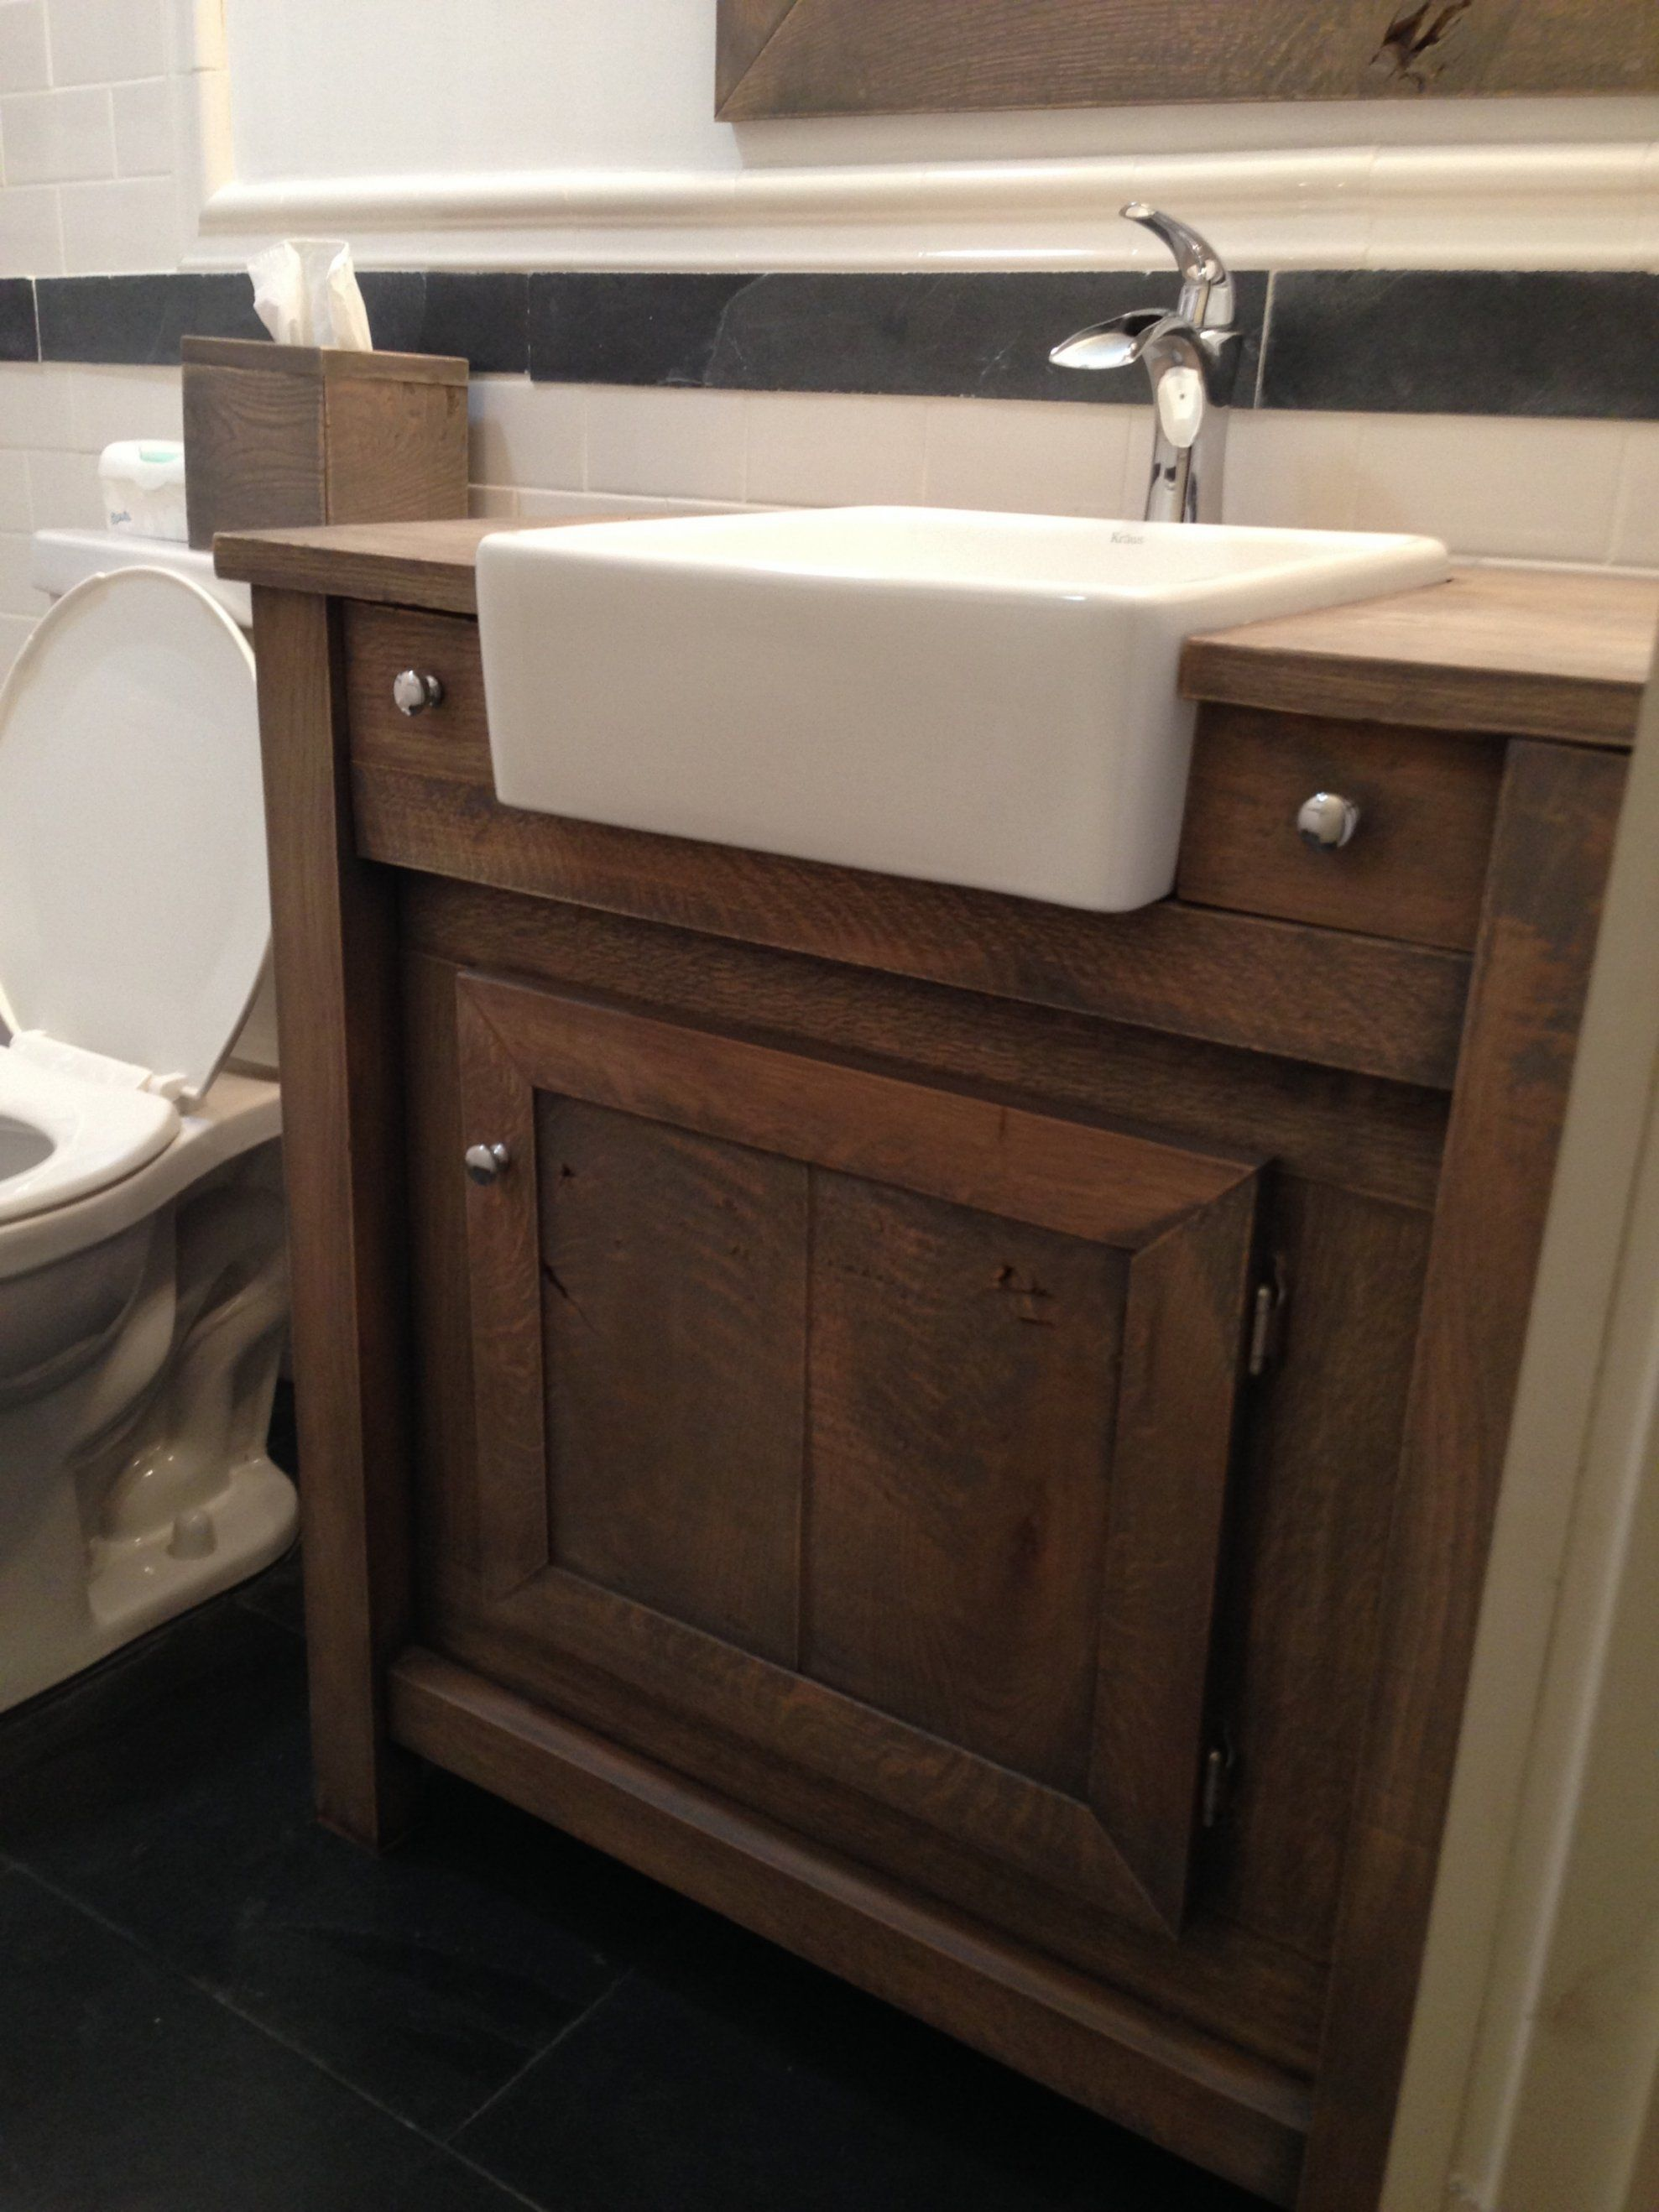 Farm Sink Bathroom Vanity Laredo With Farmhouse For Sale 10 With